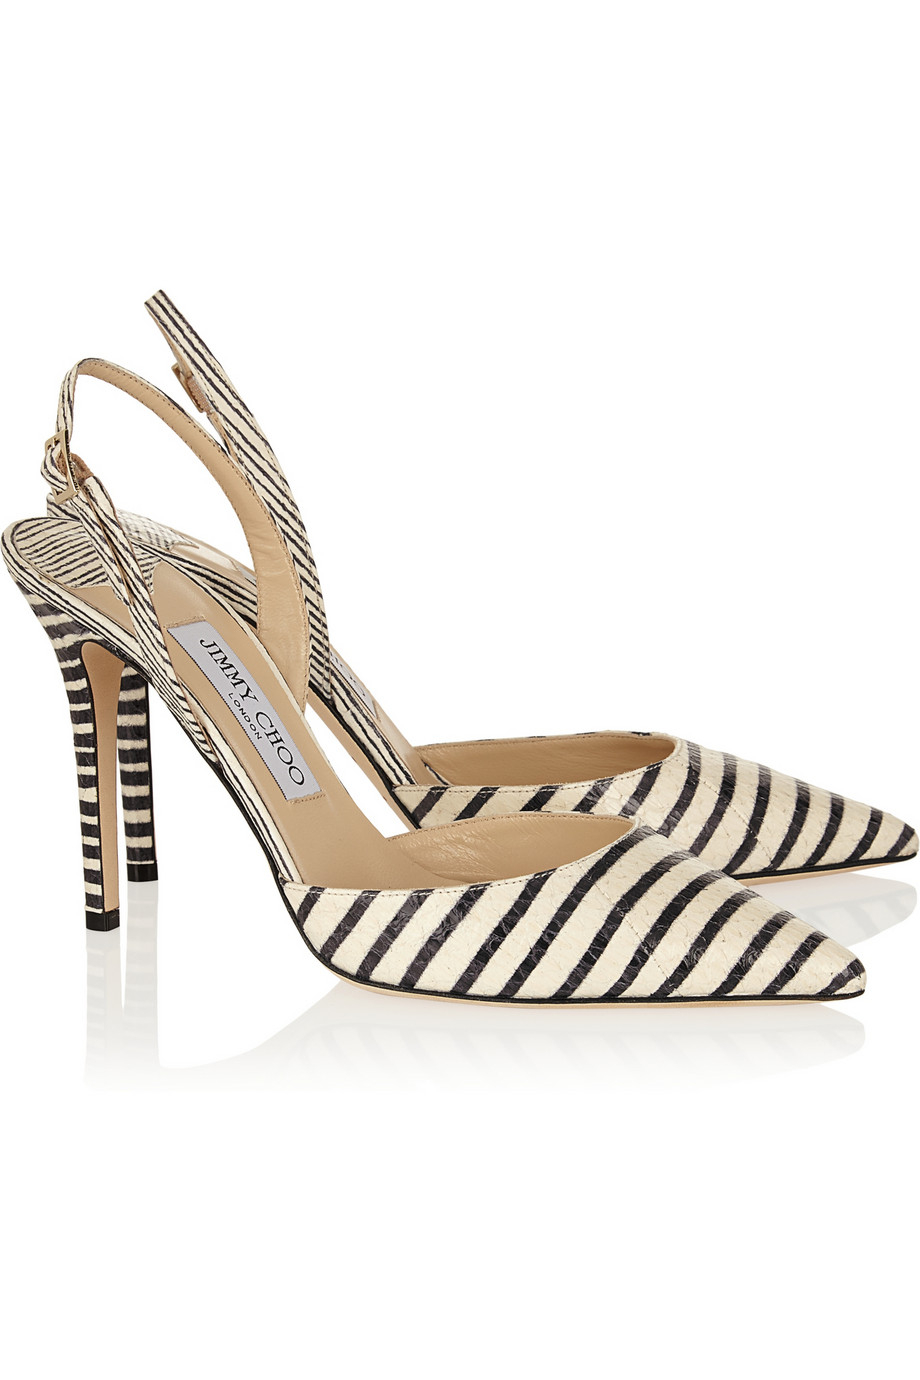 27228bc73425 Lyst - Jimmy Choo Tarida Striped Elaphe Pumps in Black